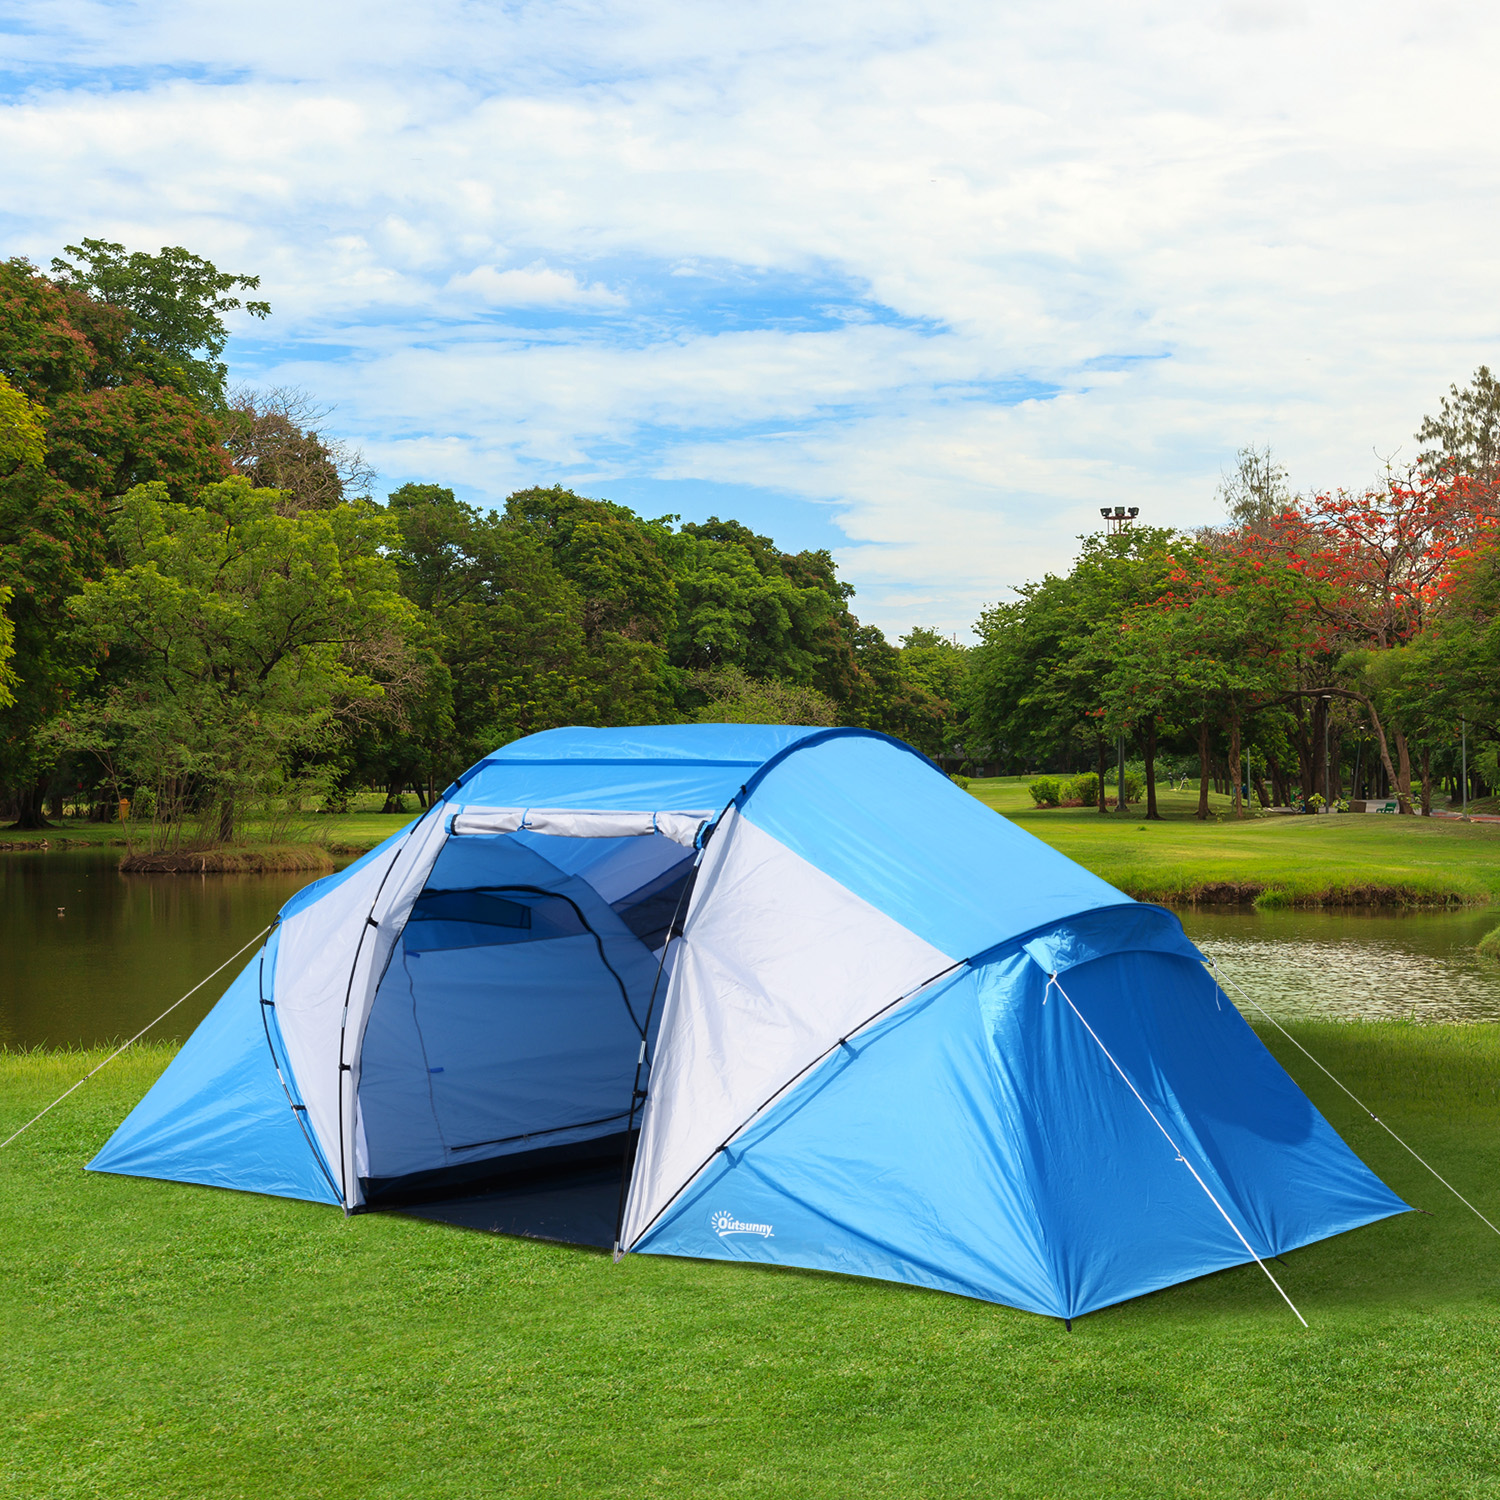 6-Person Instant Tent Outdoor Cabin Waterproof Family Dome Portable Camp Shelter